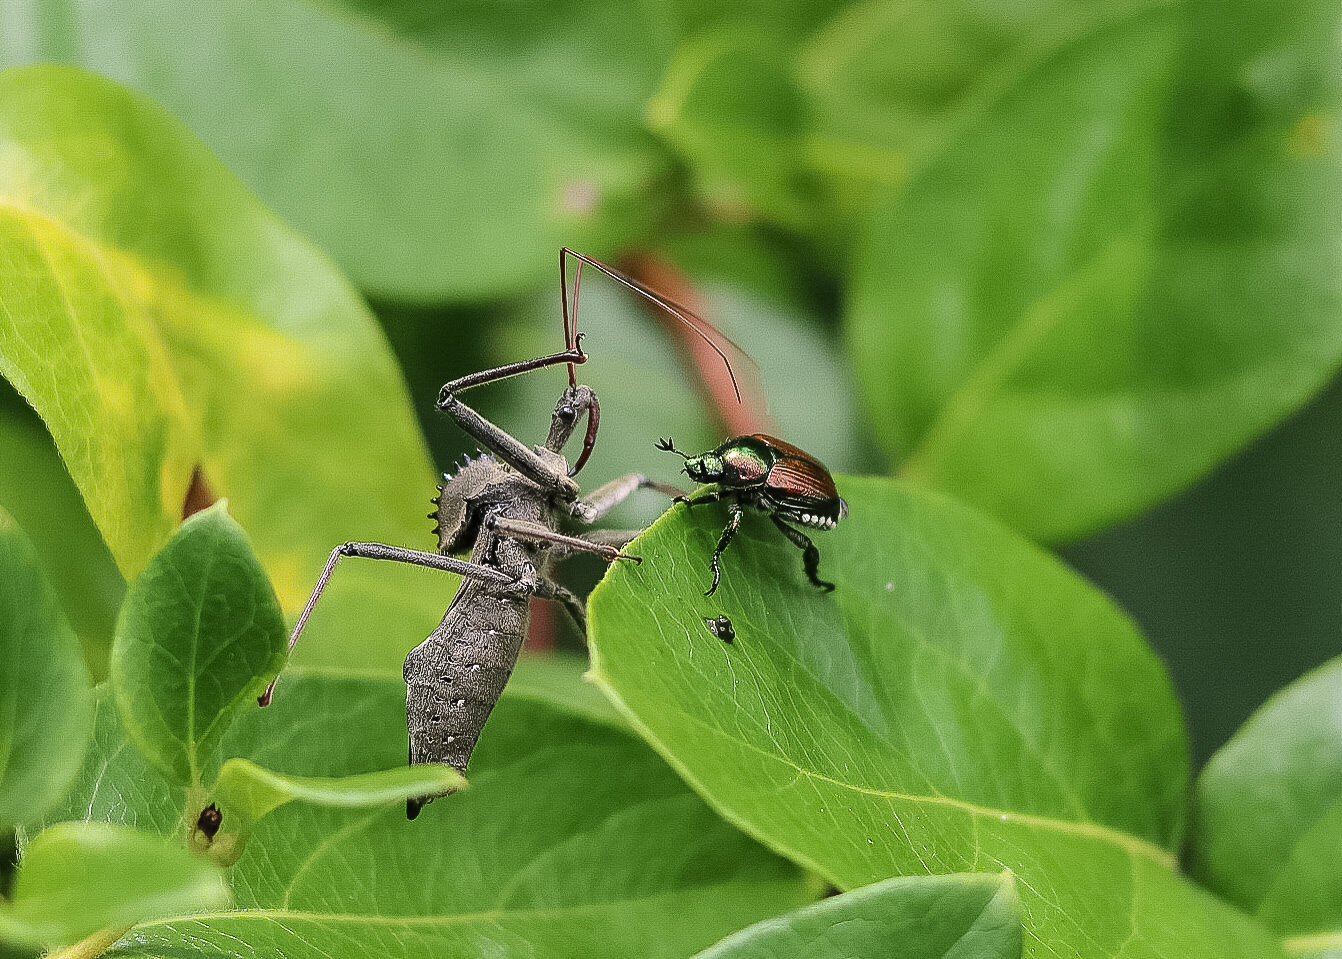 Wheel bug stalking a Japanese beetle.  Image by Jody Thompson.